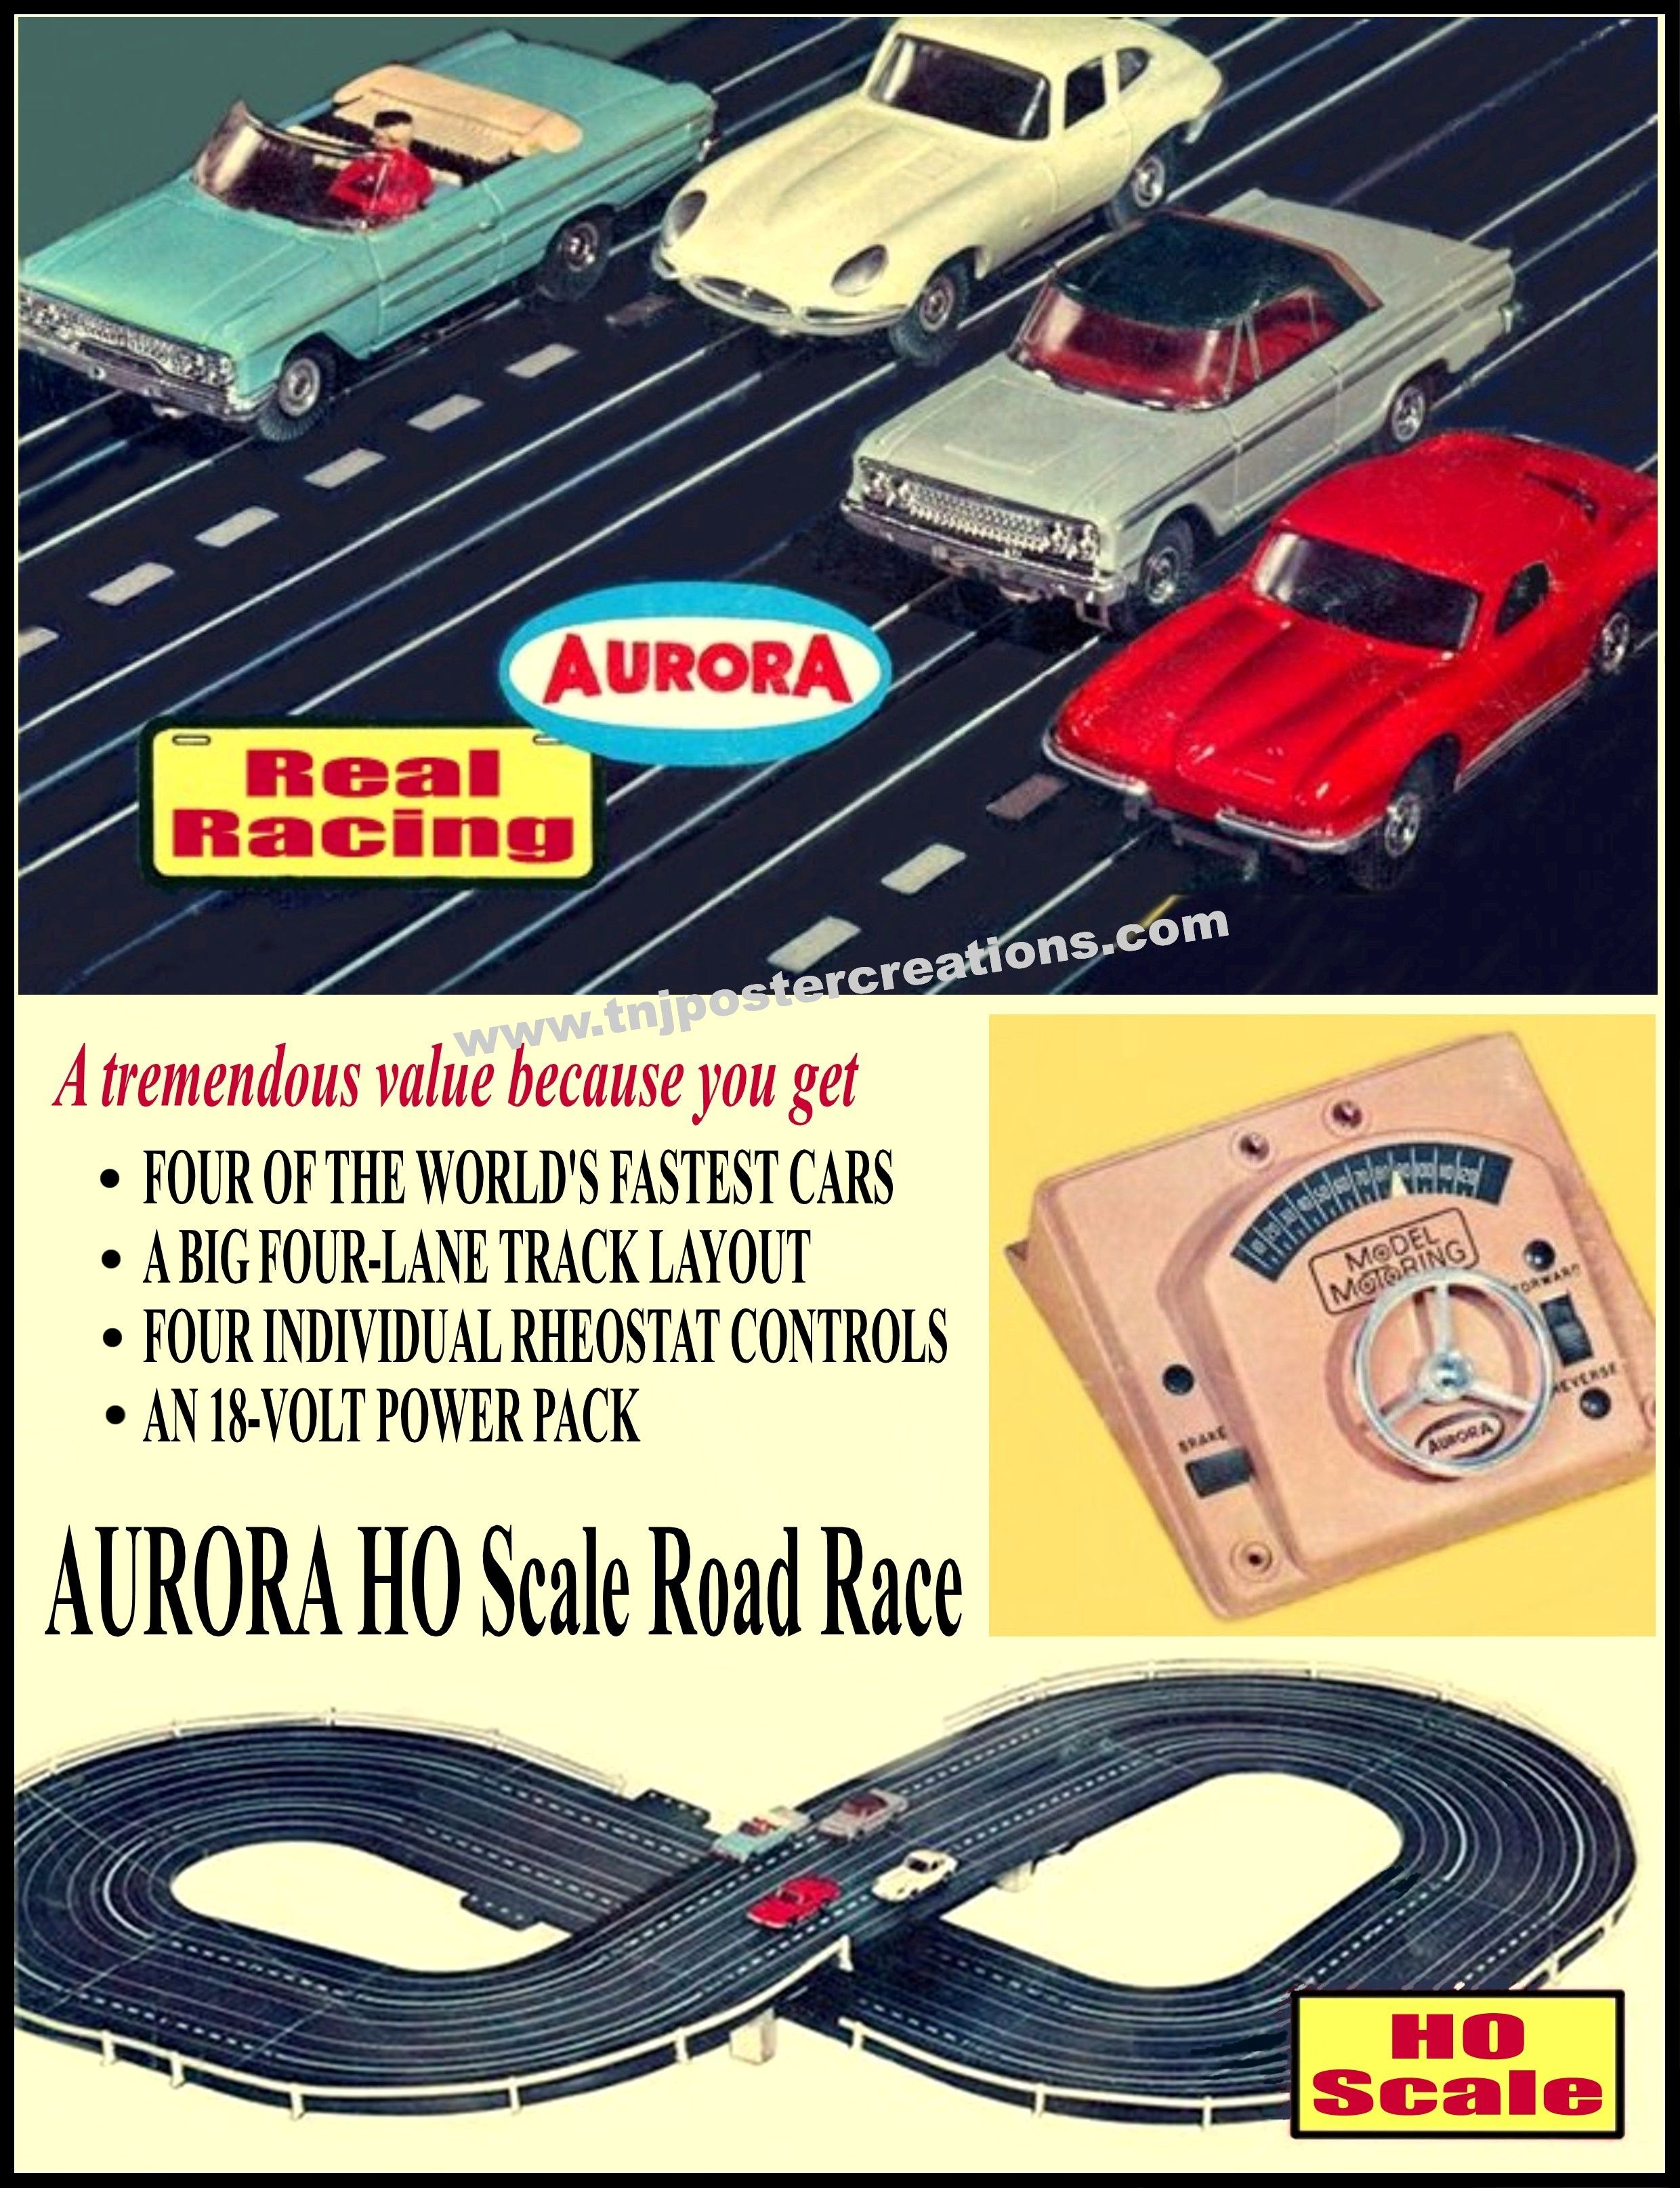 aurora model motoring wiring diagram aurora image real racing aurora ho scale slot car road race sets poster on aurora model motoring